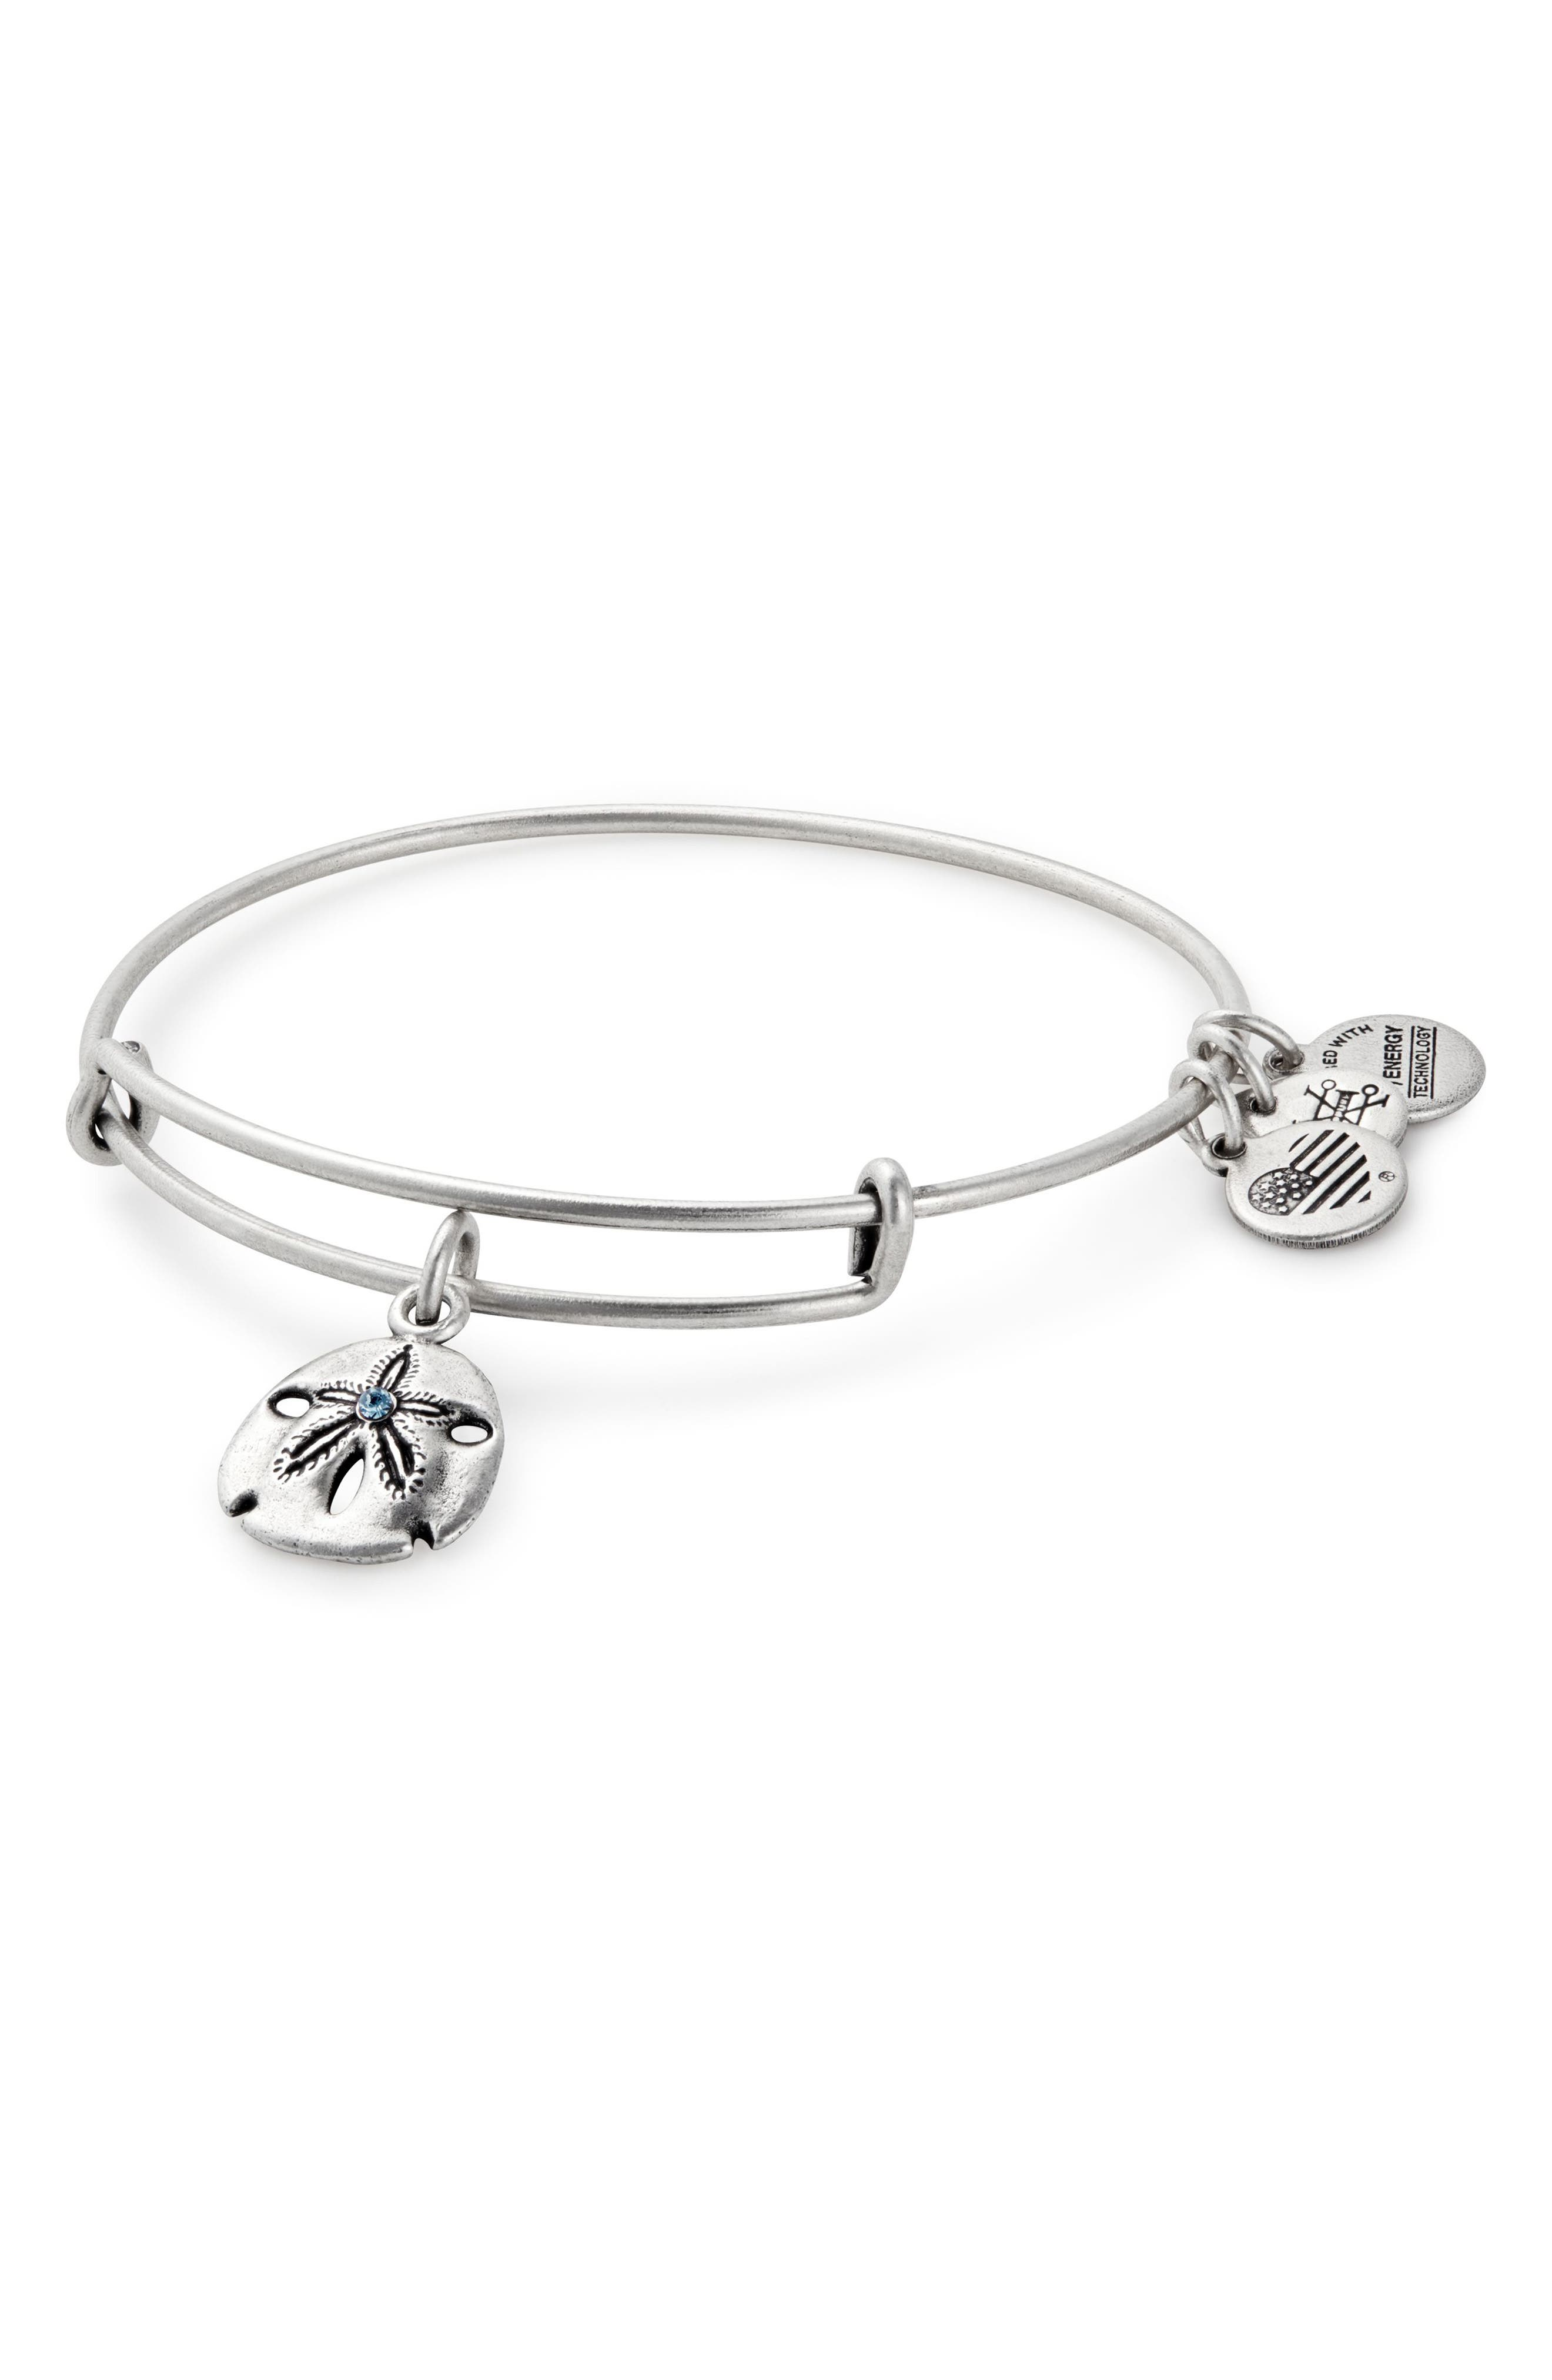 SAND DOLLAR ADJUSTABLE WIRE BANGLE